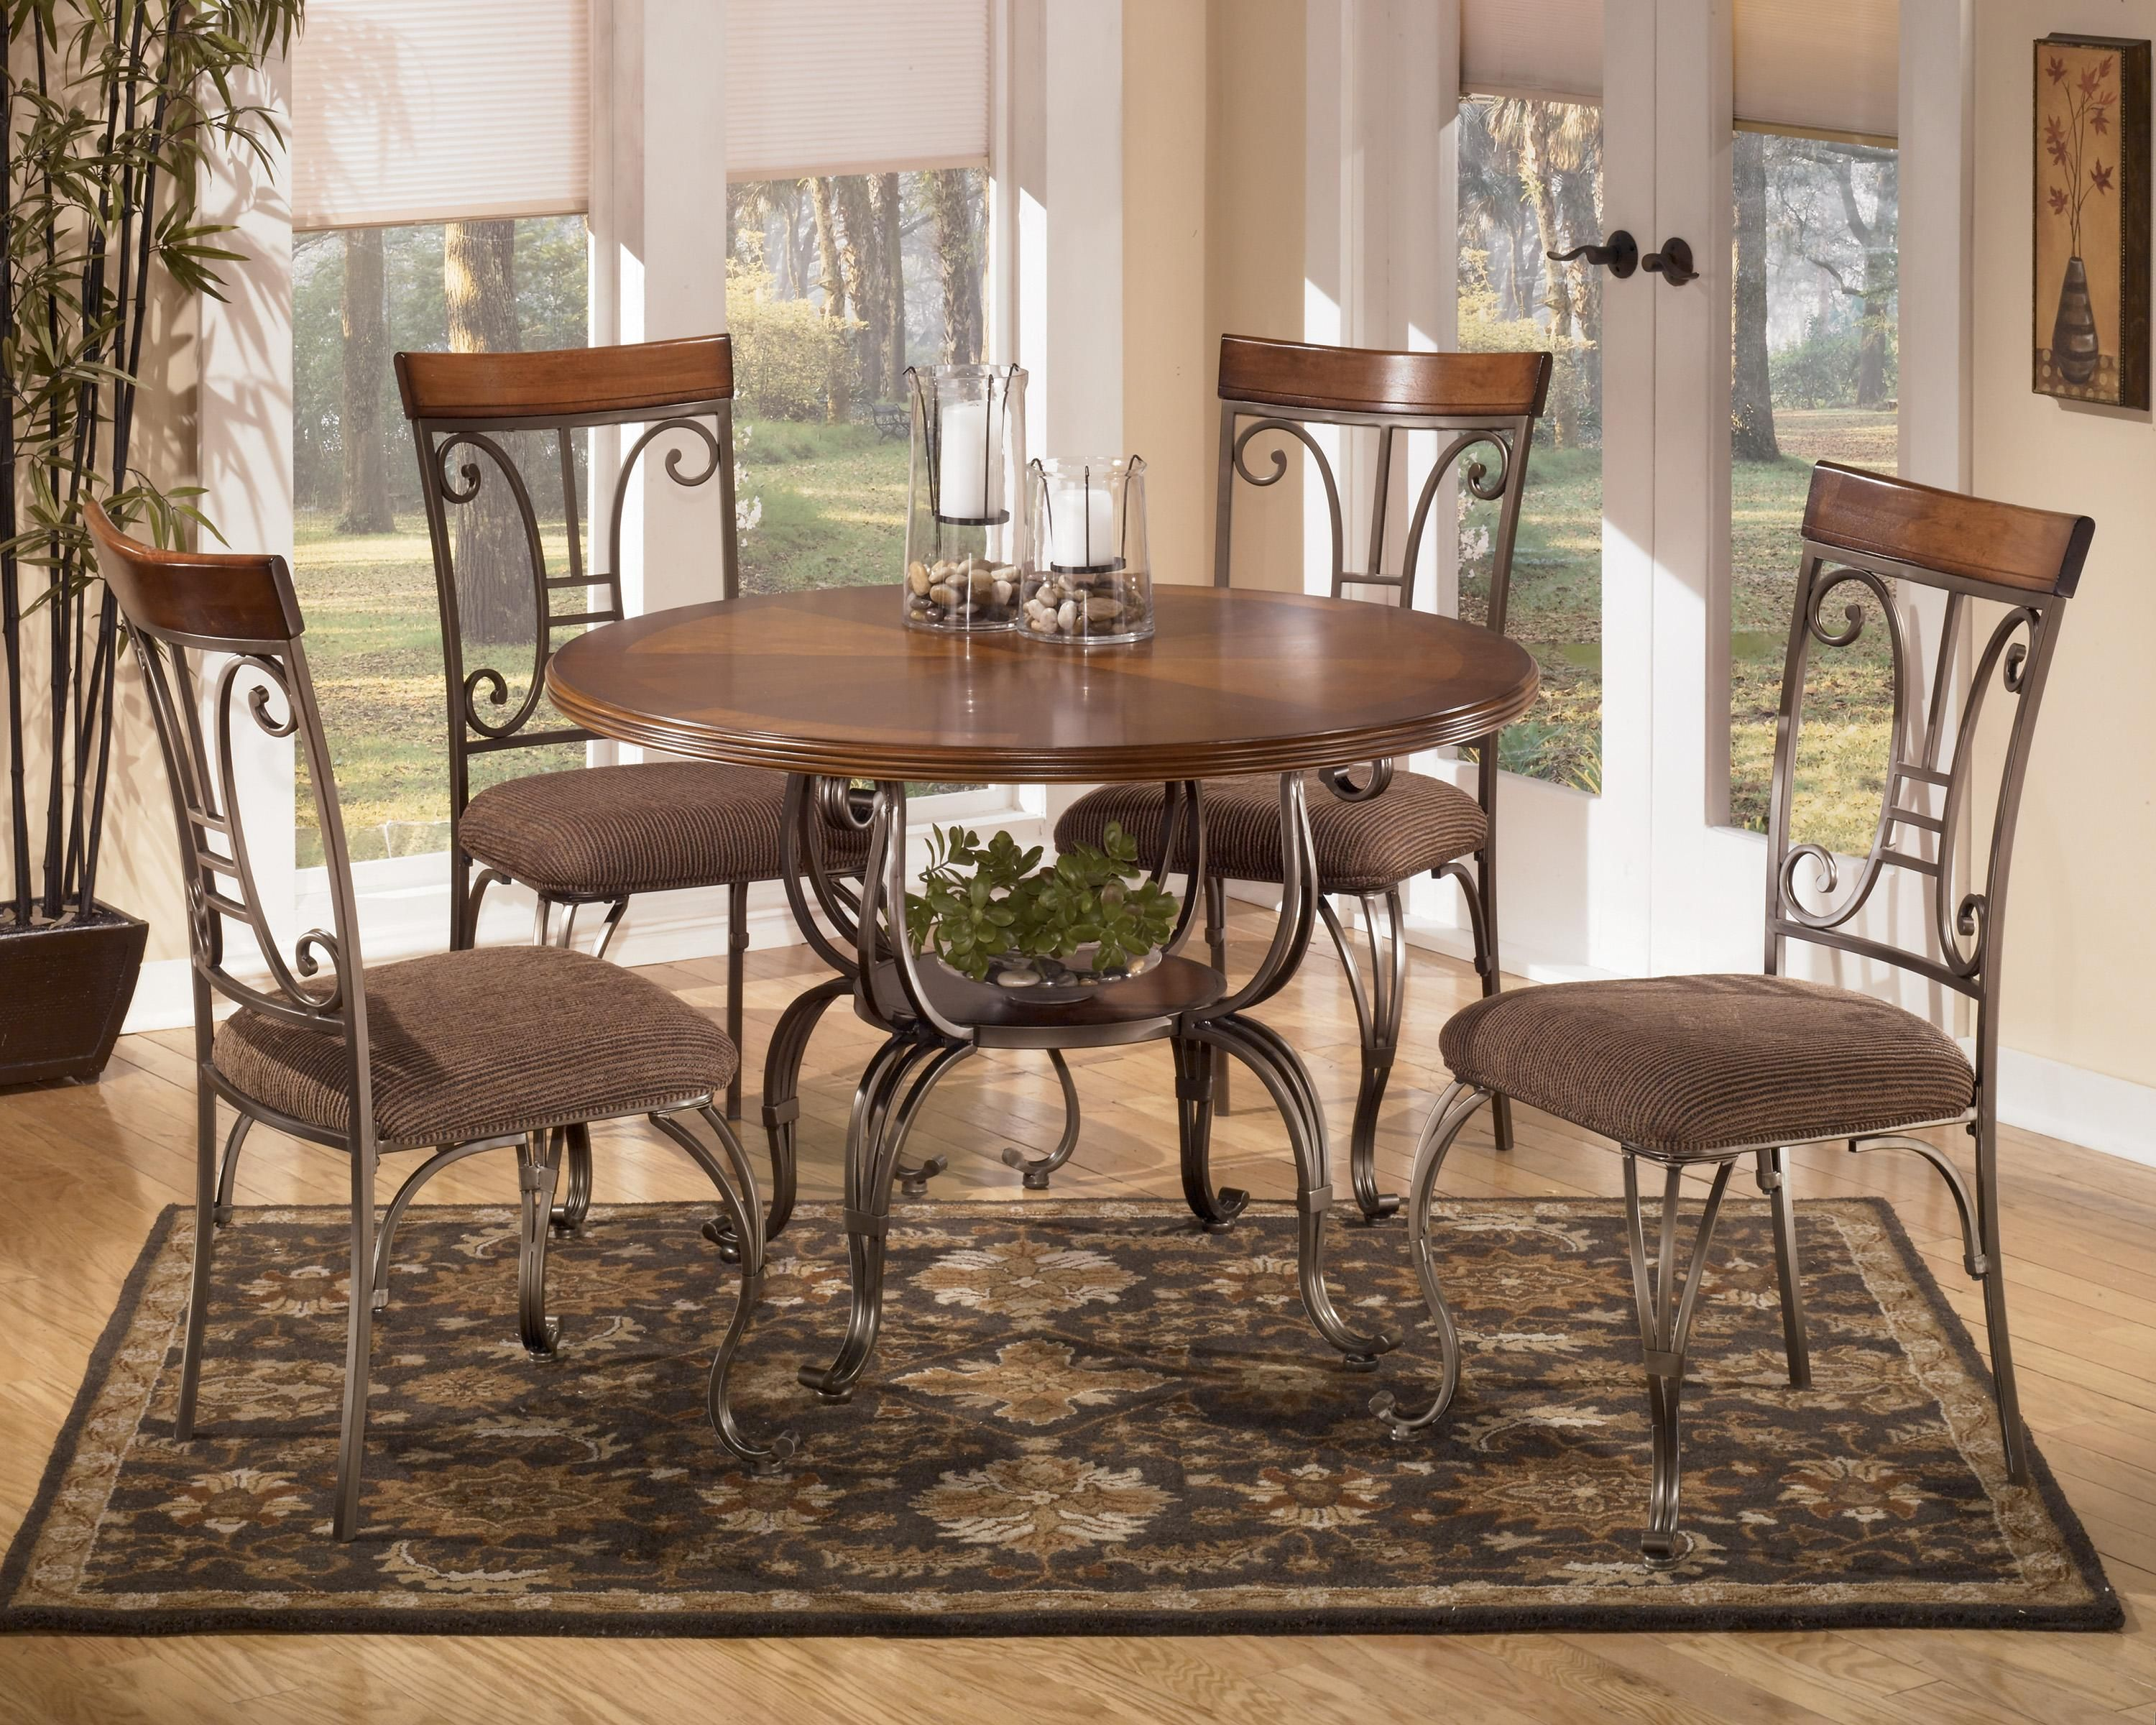 Plentywood 5 Piece Round Dining Table Set By Signature